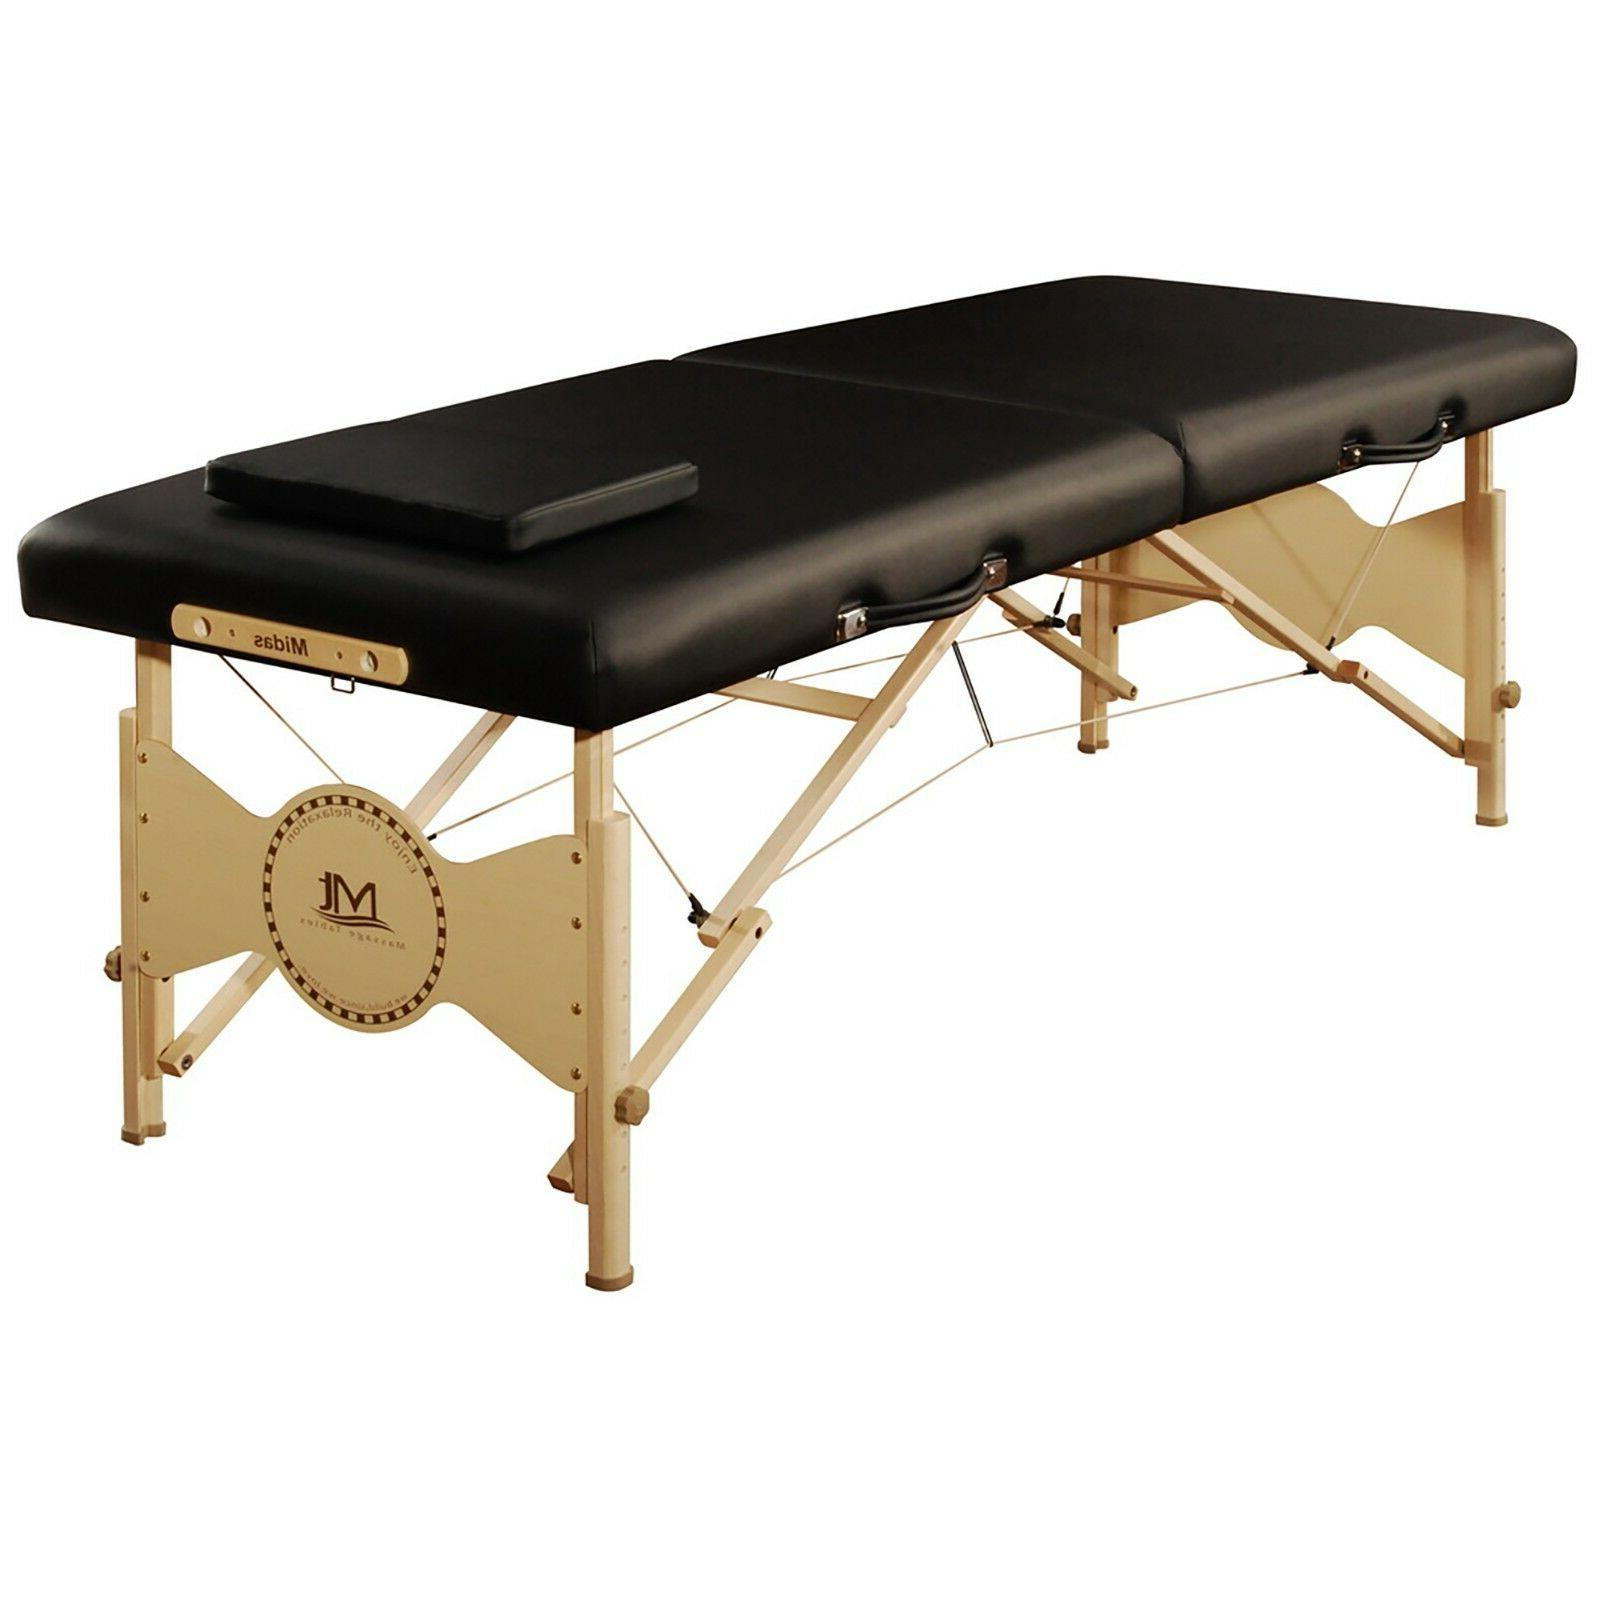 MT Massage 28 inch Midas Entry Portable Package Bed Couch Ta